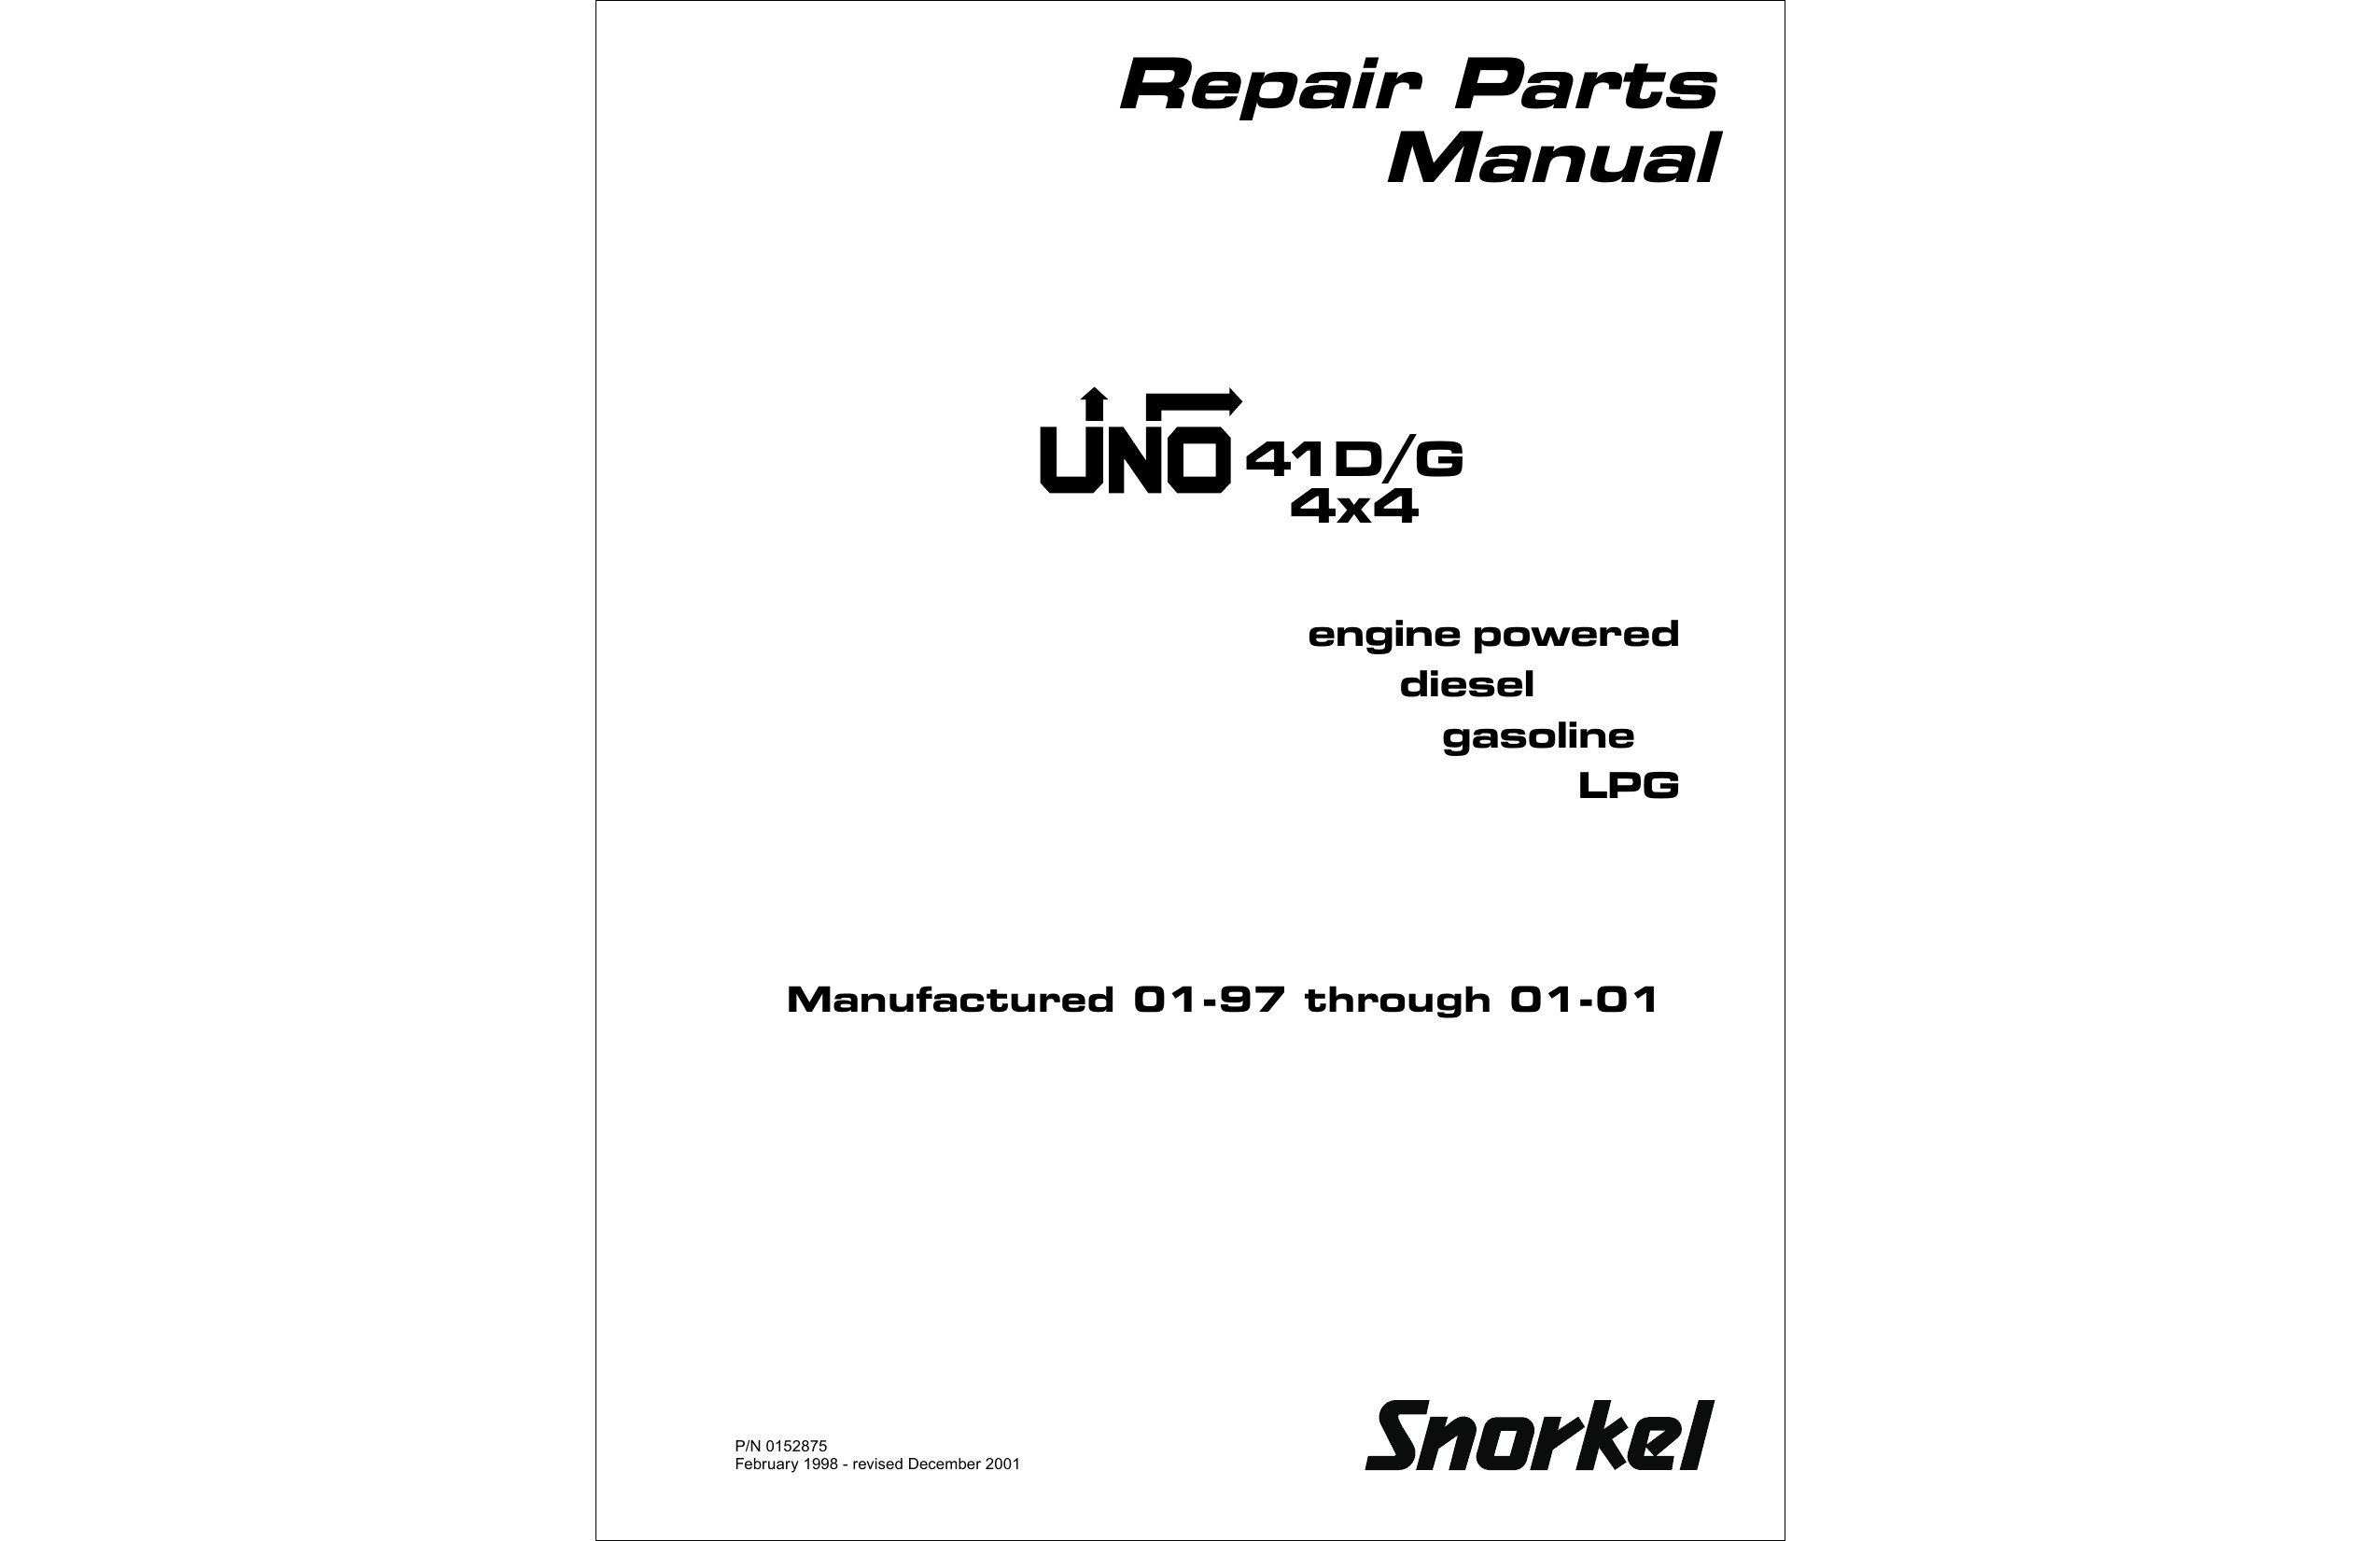 Wireing Diagram for A 1998 41 G Snorkl Man Lift Repair Parts Manual Of Wireing Diagram for A 1998 41 G Snorkl Man Lift